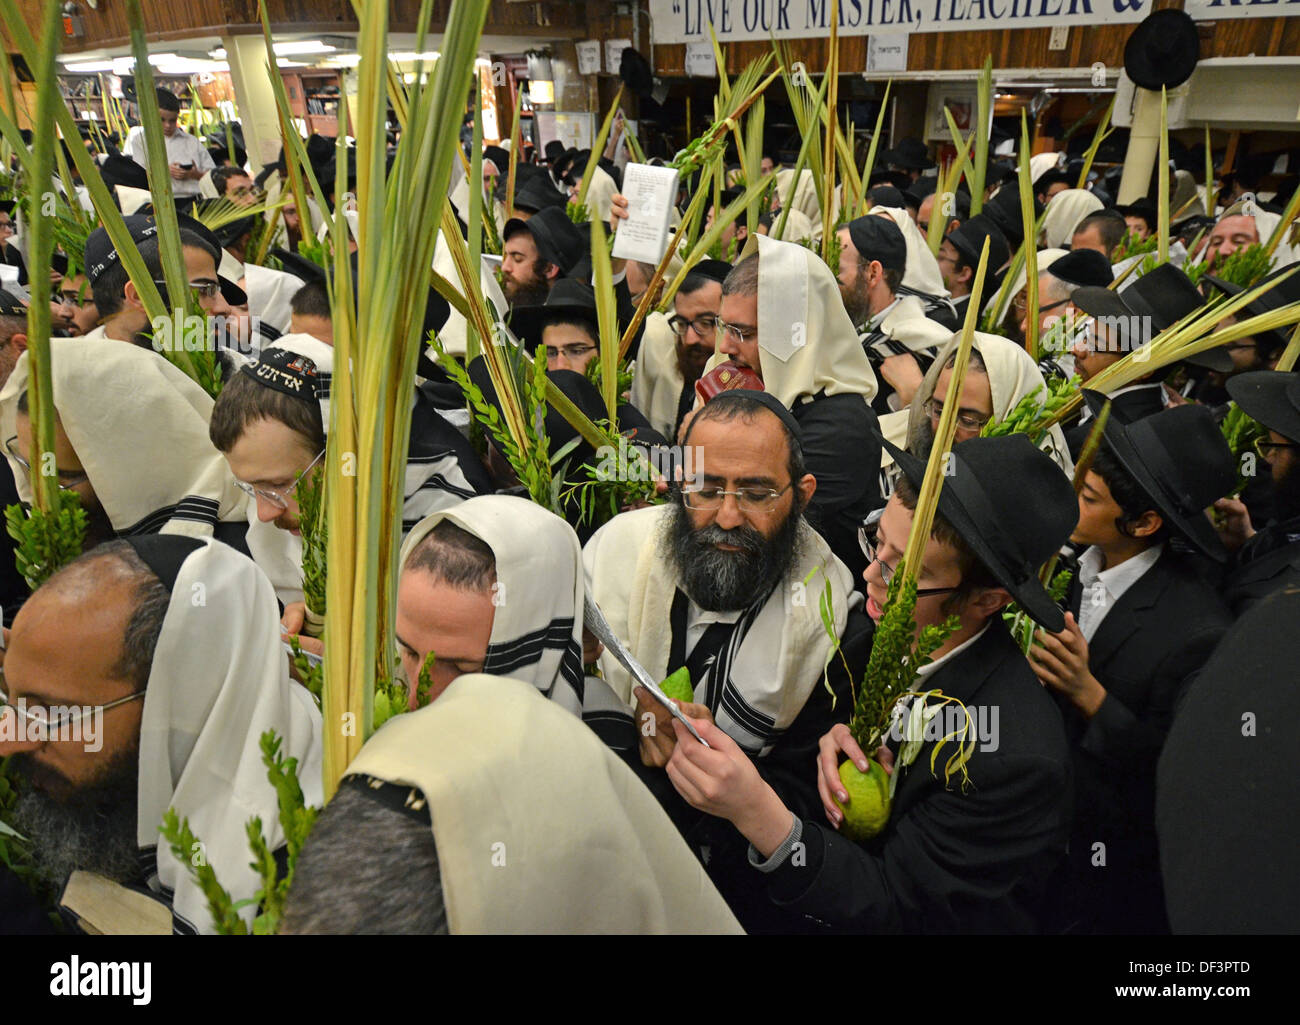 Sukkot morning services at Lubavitch headquarters in Brooklyn where worshipers carry an esrog and lulav and circle the podium. - Stock Image